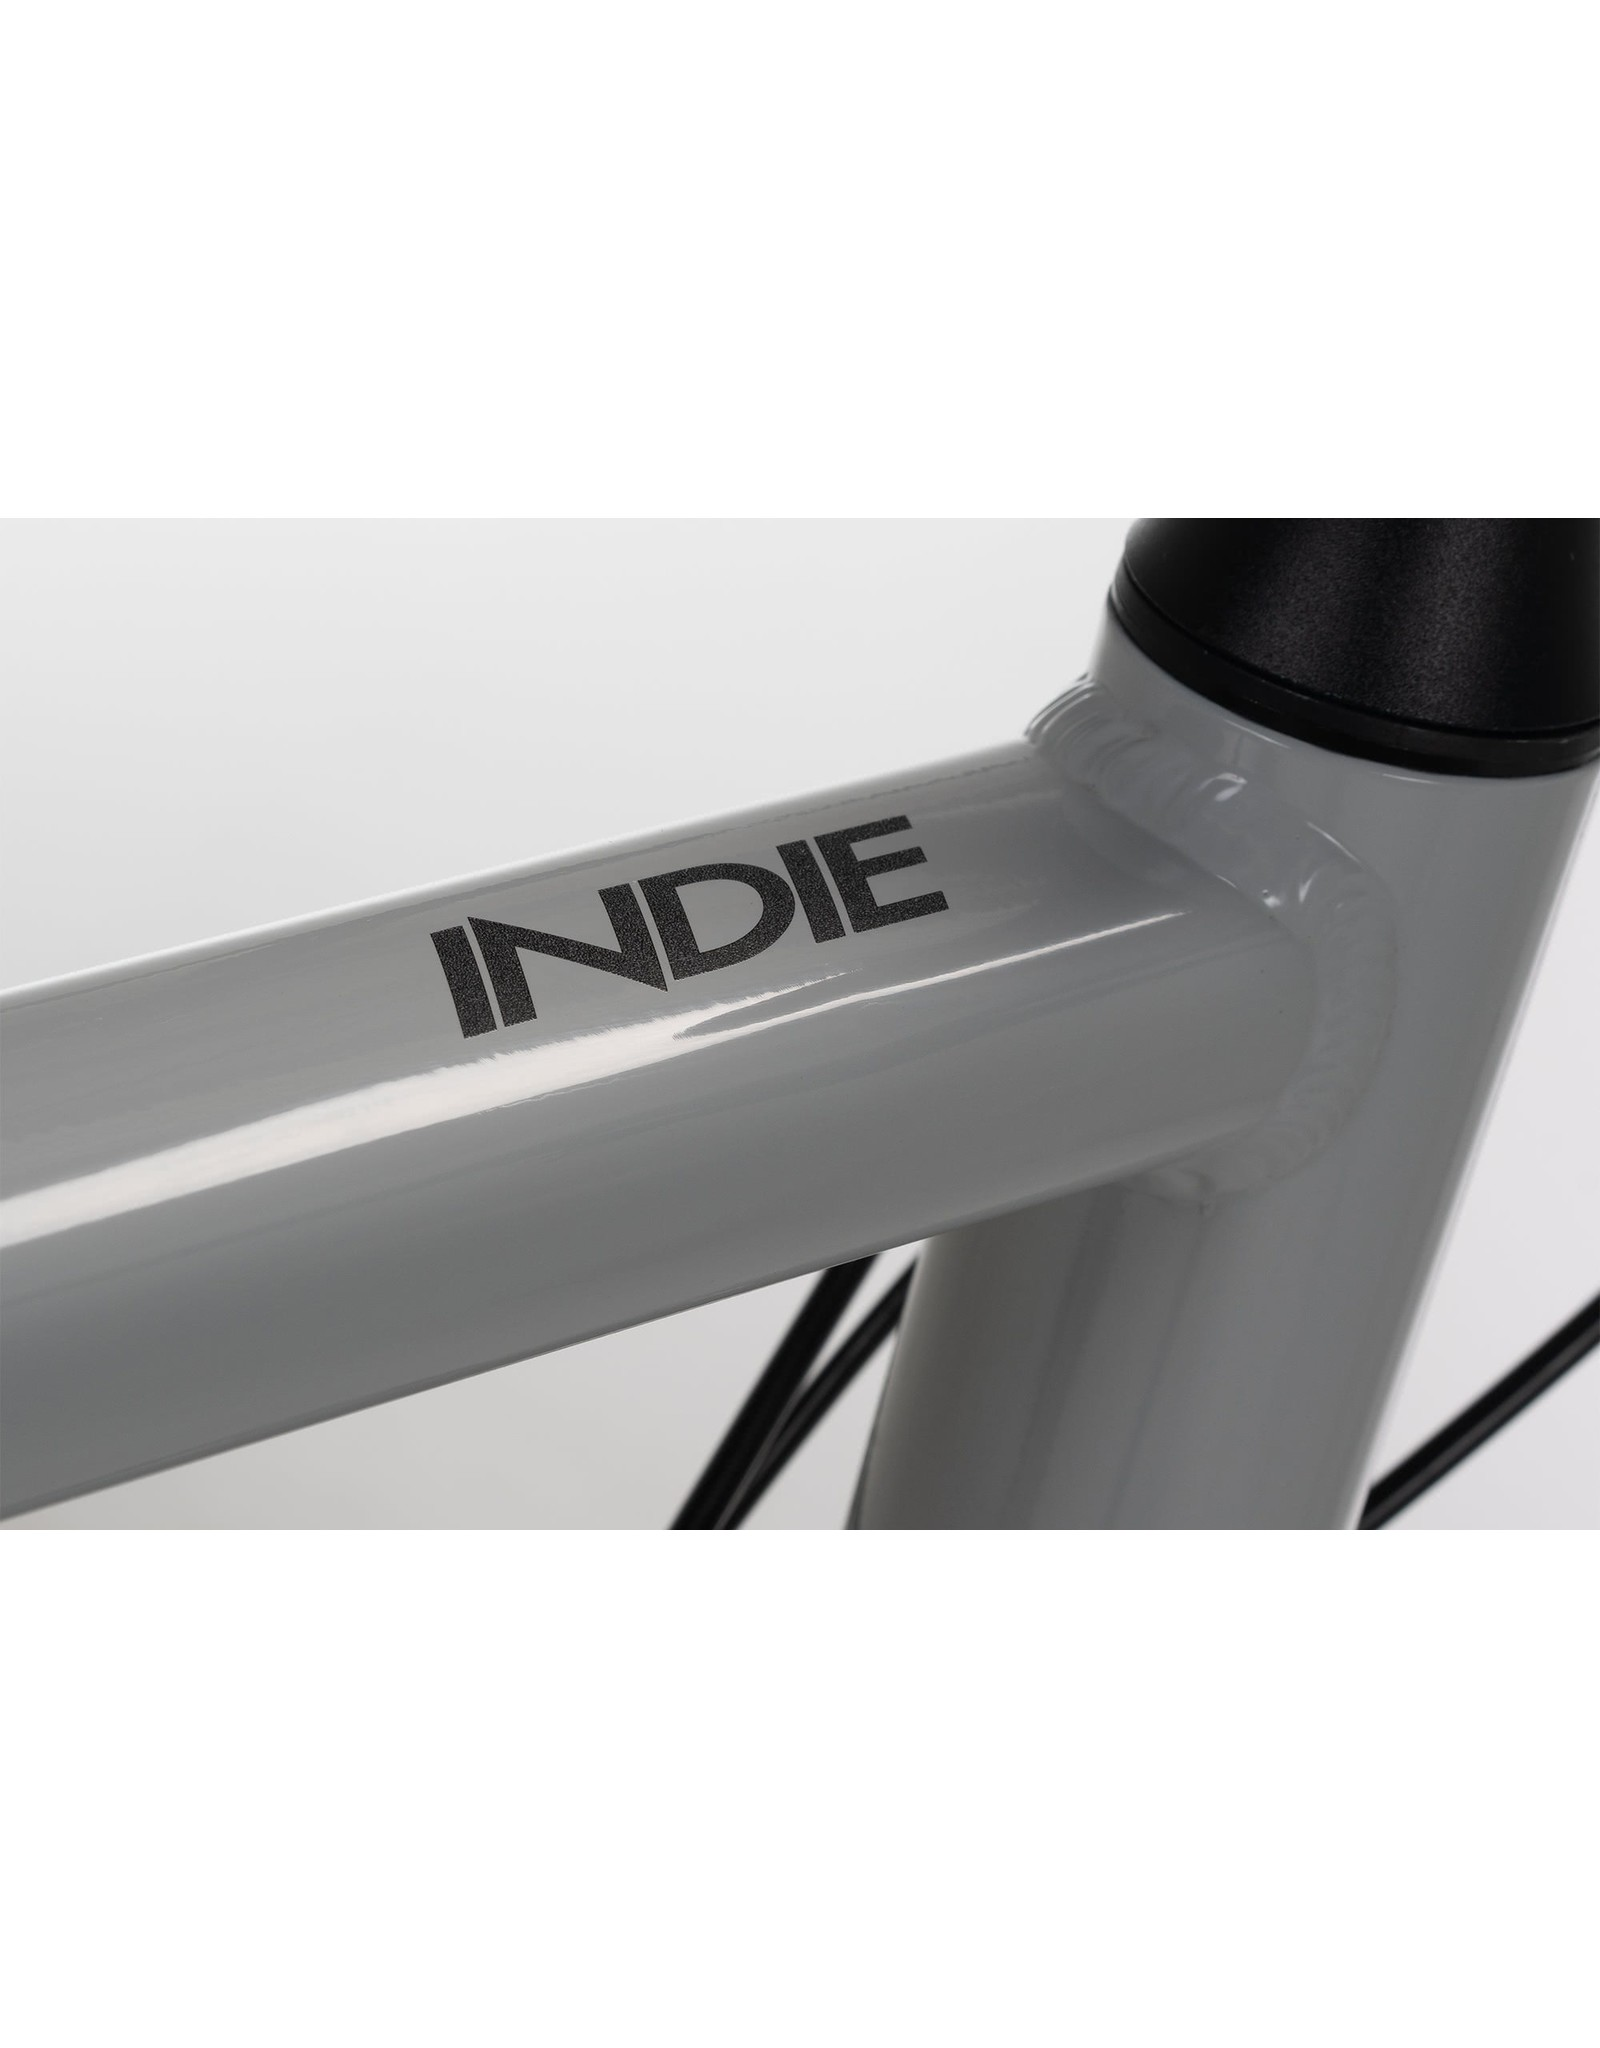 Norco 2021 Norco Indie 4